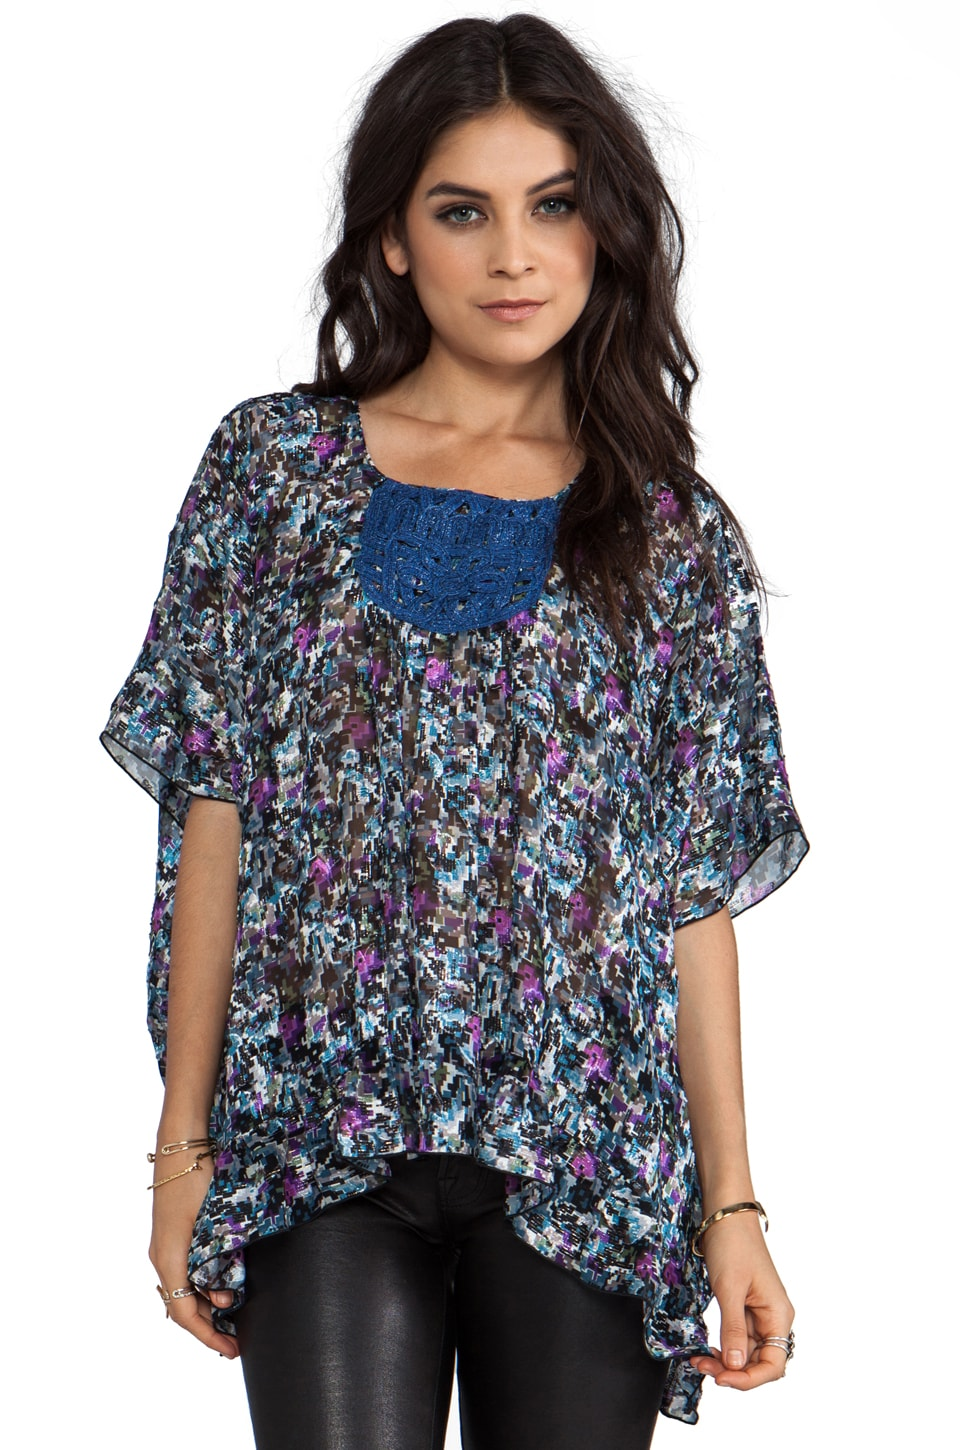 Anna Sui Digital Rose Print Floral Jacquard Top in Slate Blue Mutli